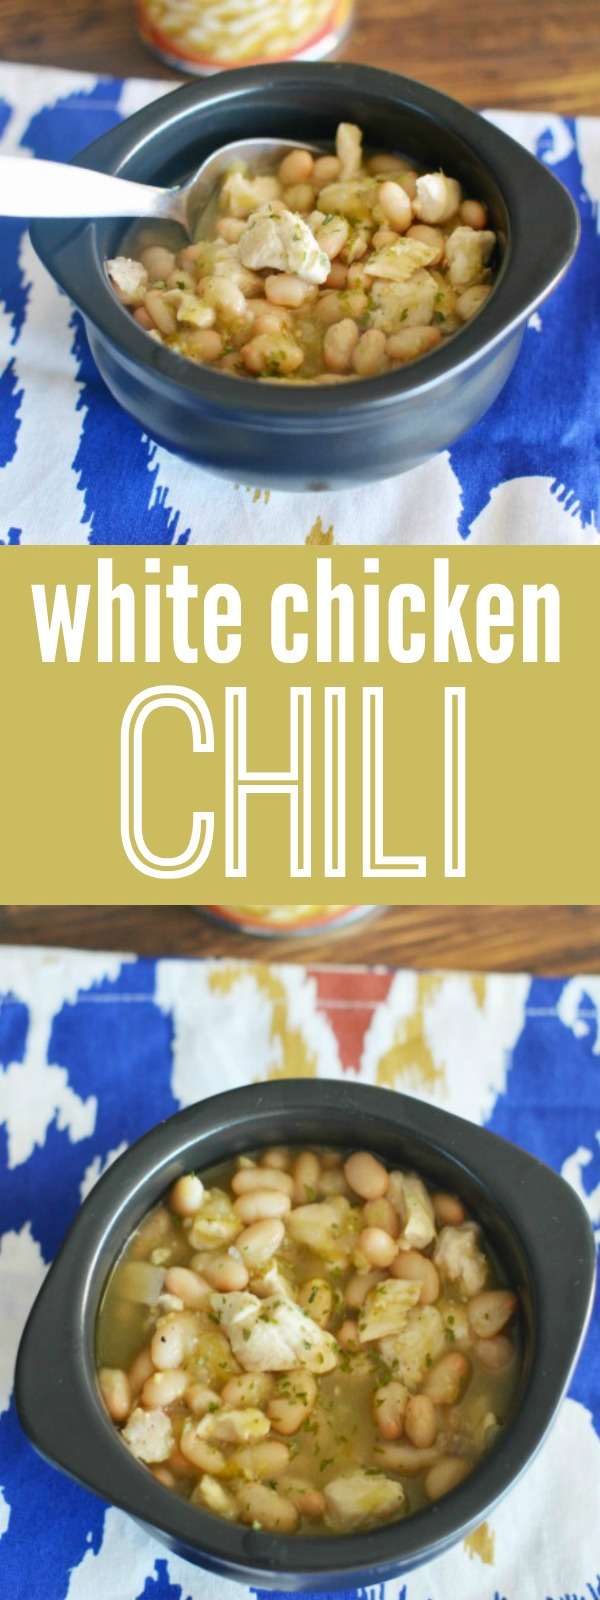 White Chicken Chili recipe made easy with just 6 ingredients.  Super simple weeknight meal.  Batch cook and freeze!